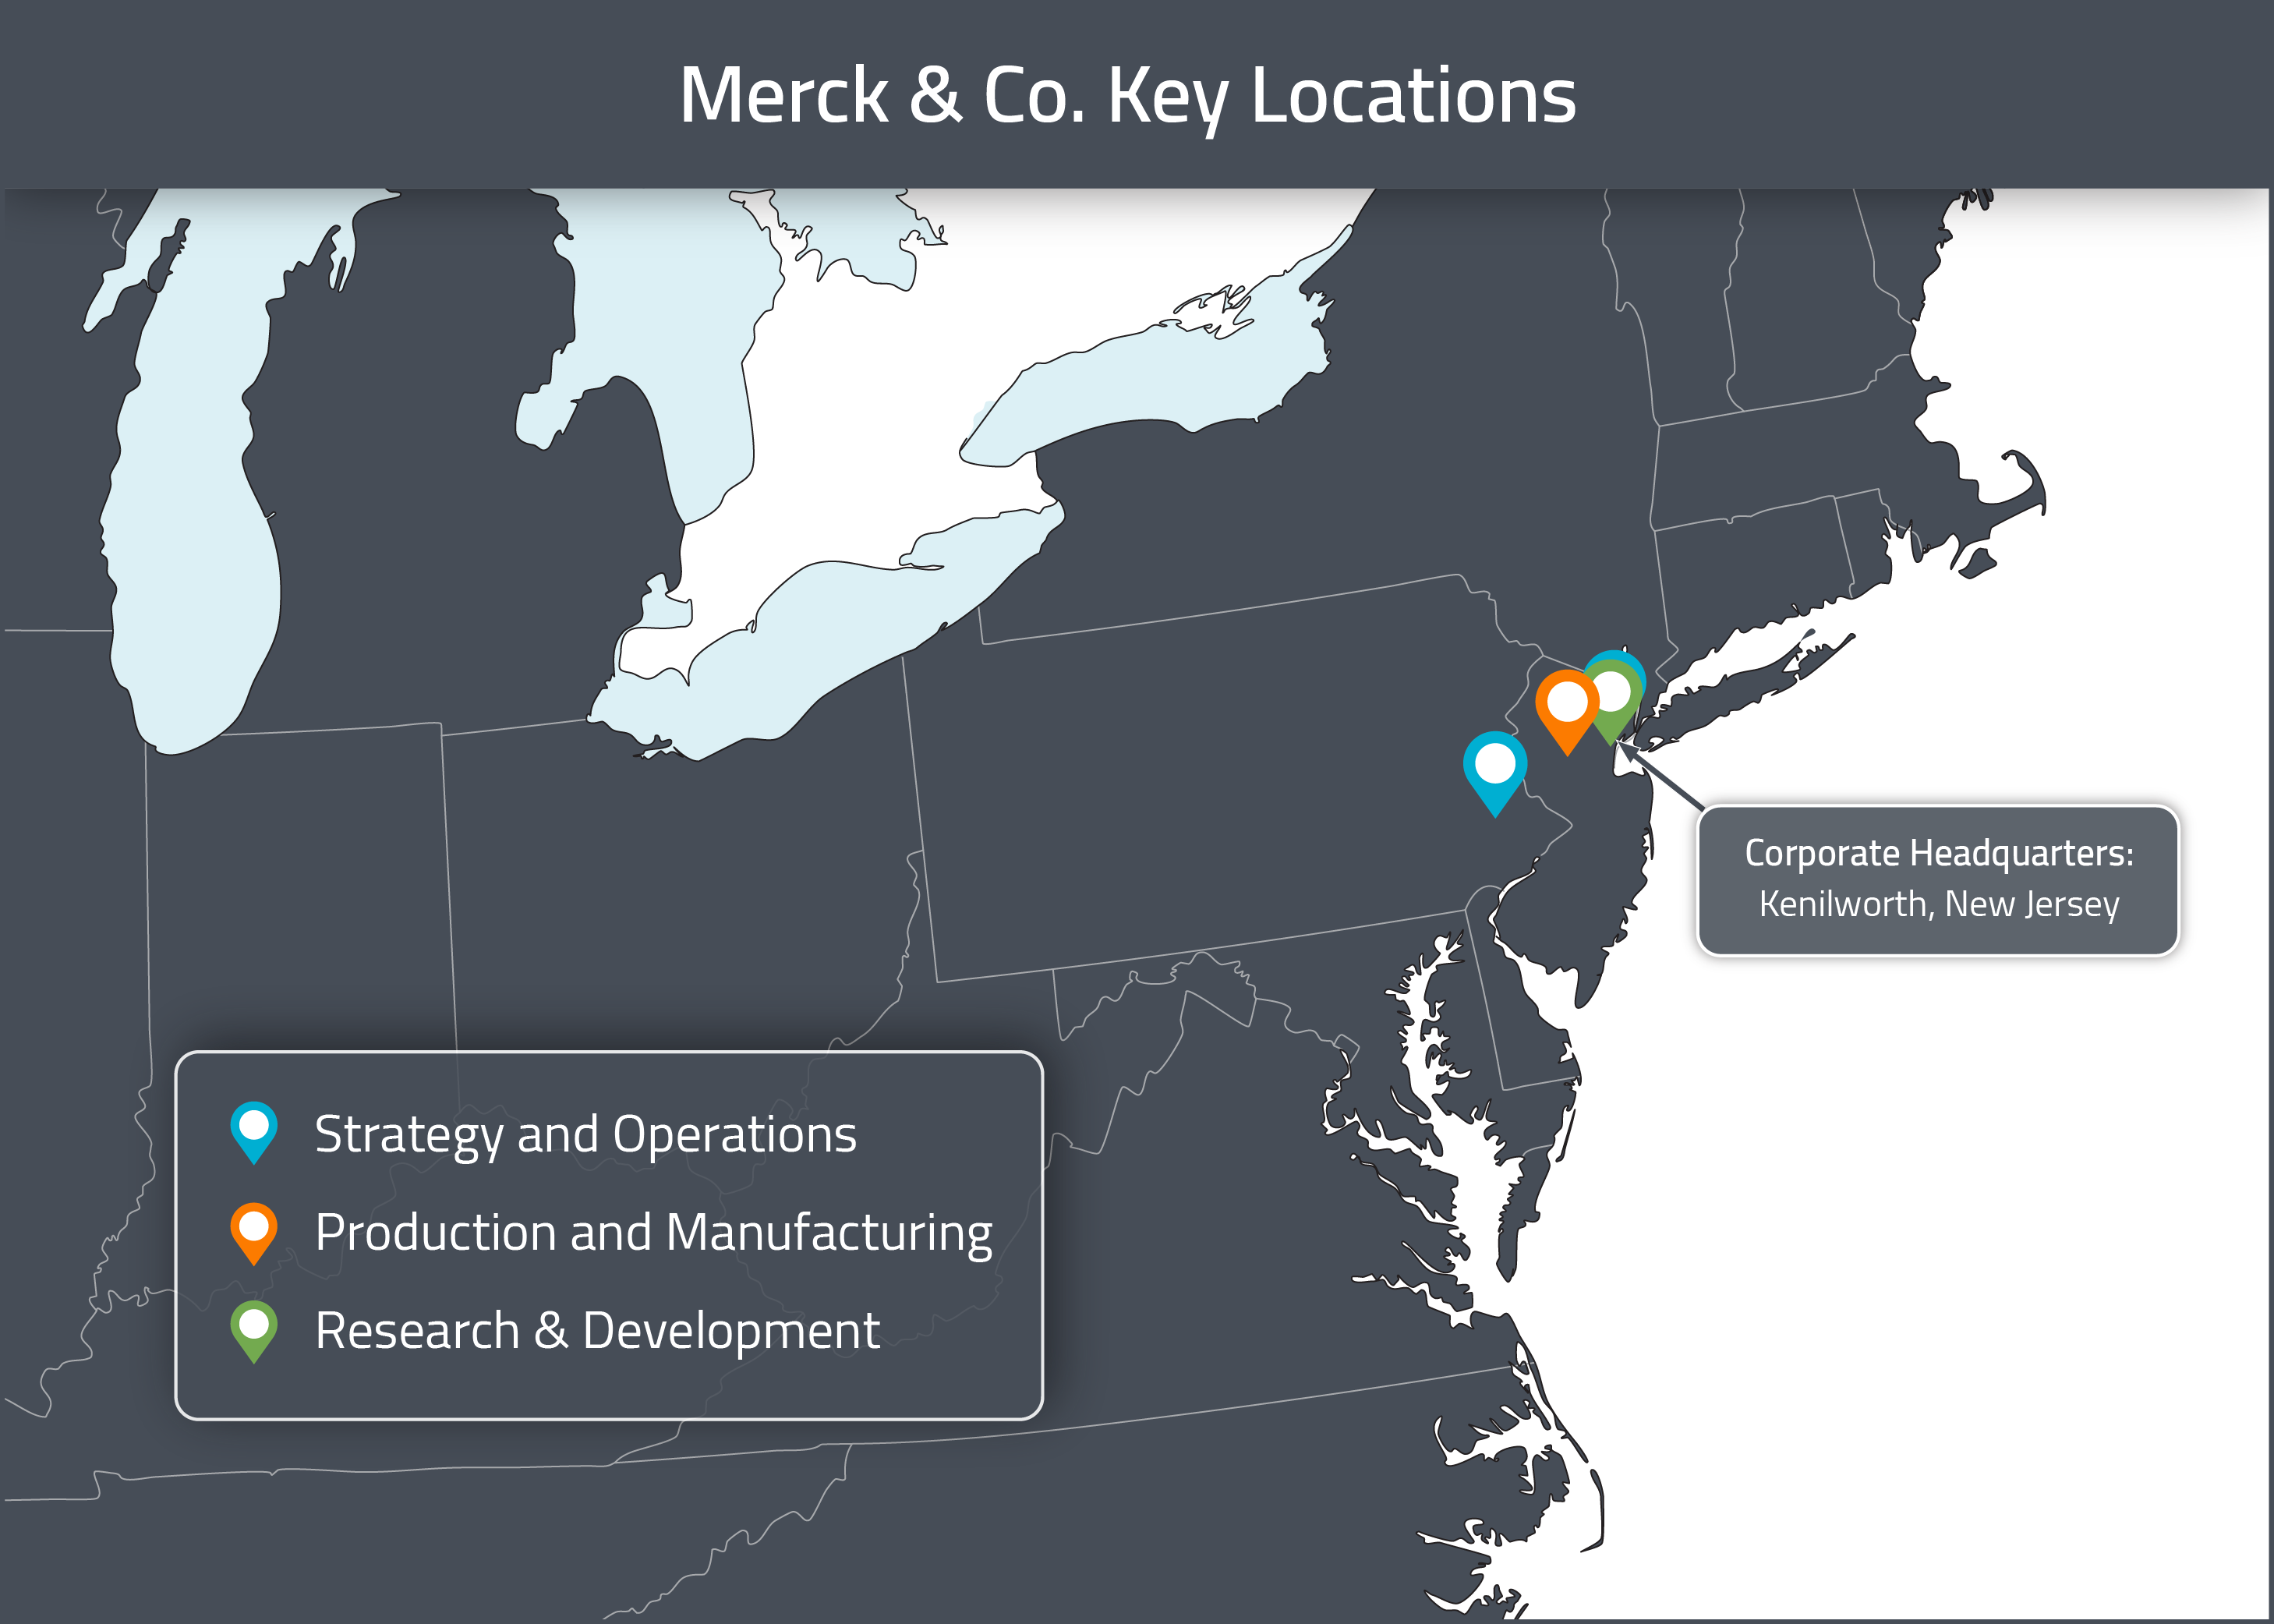 A map of Merck & Co's US Corporate locations